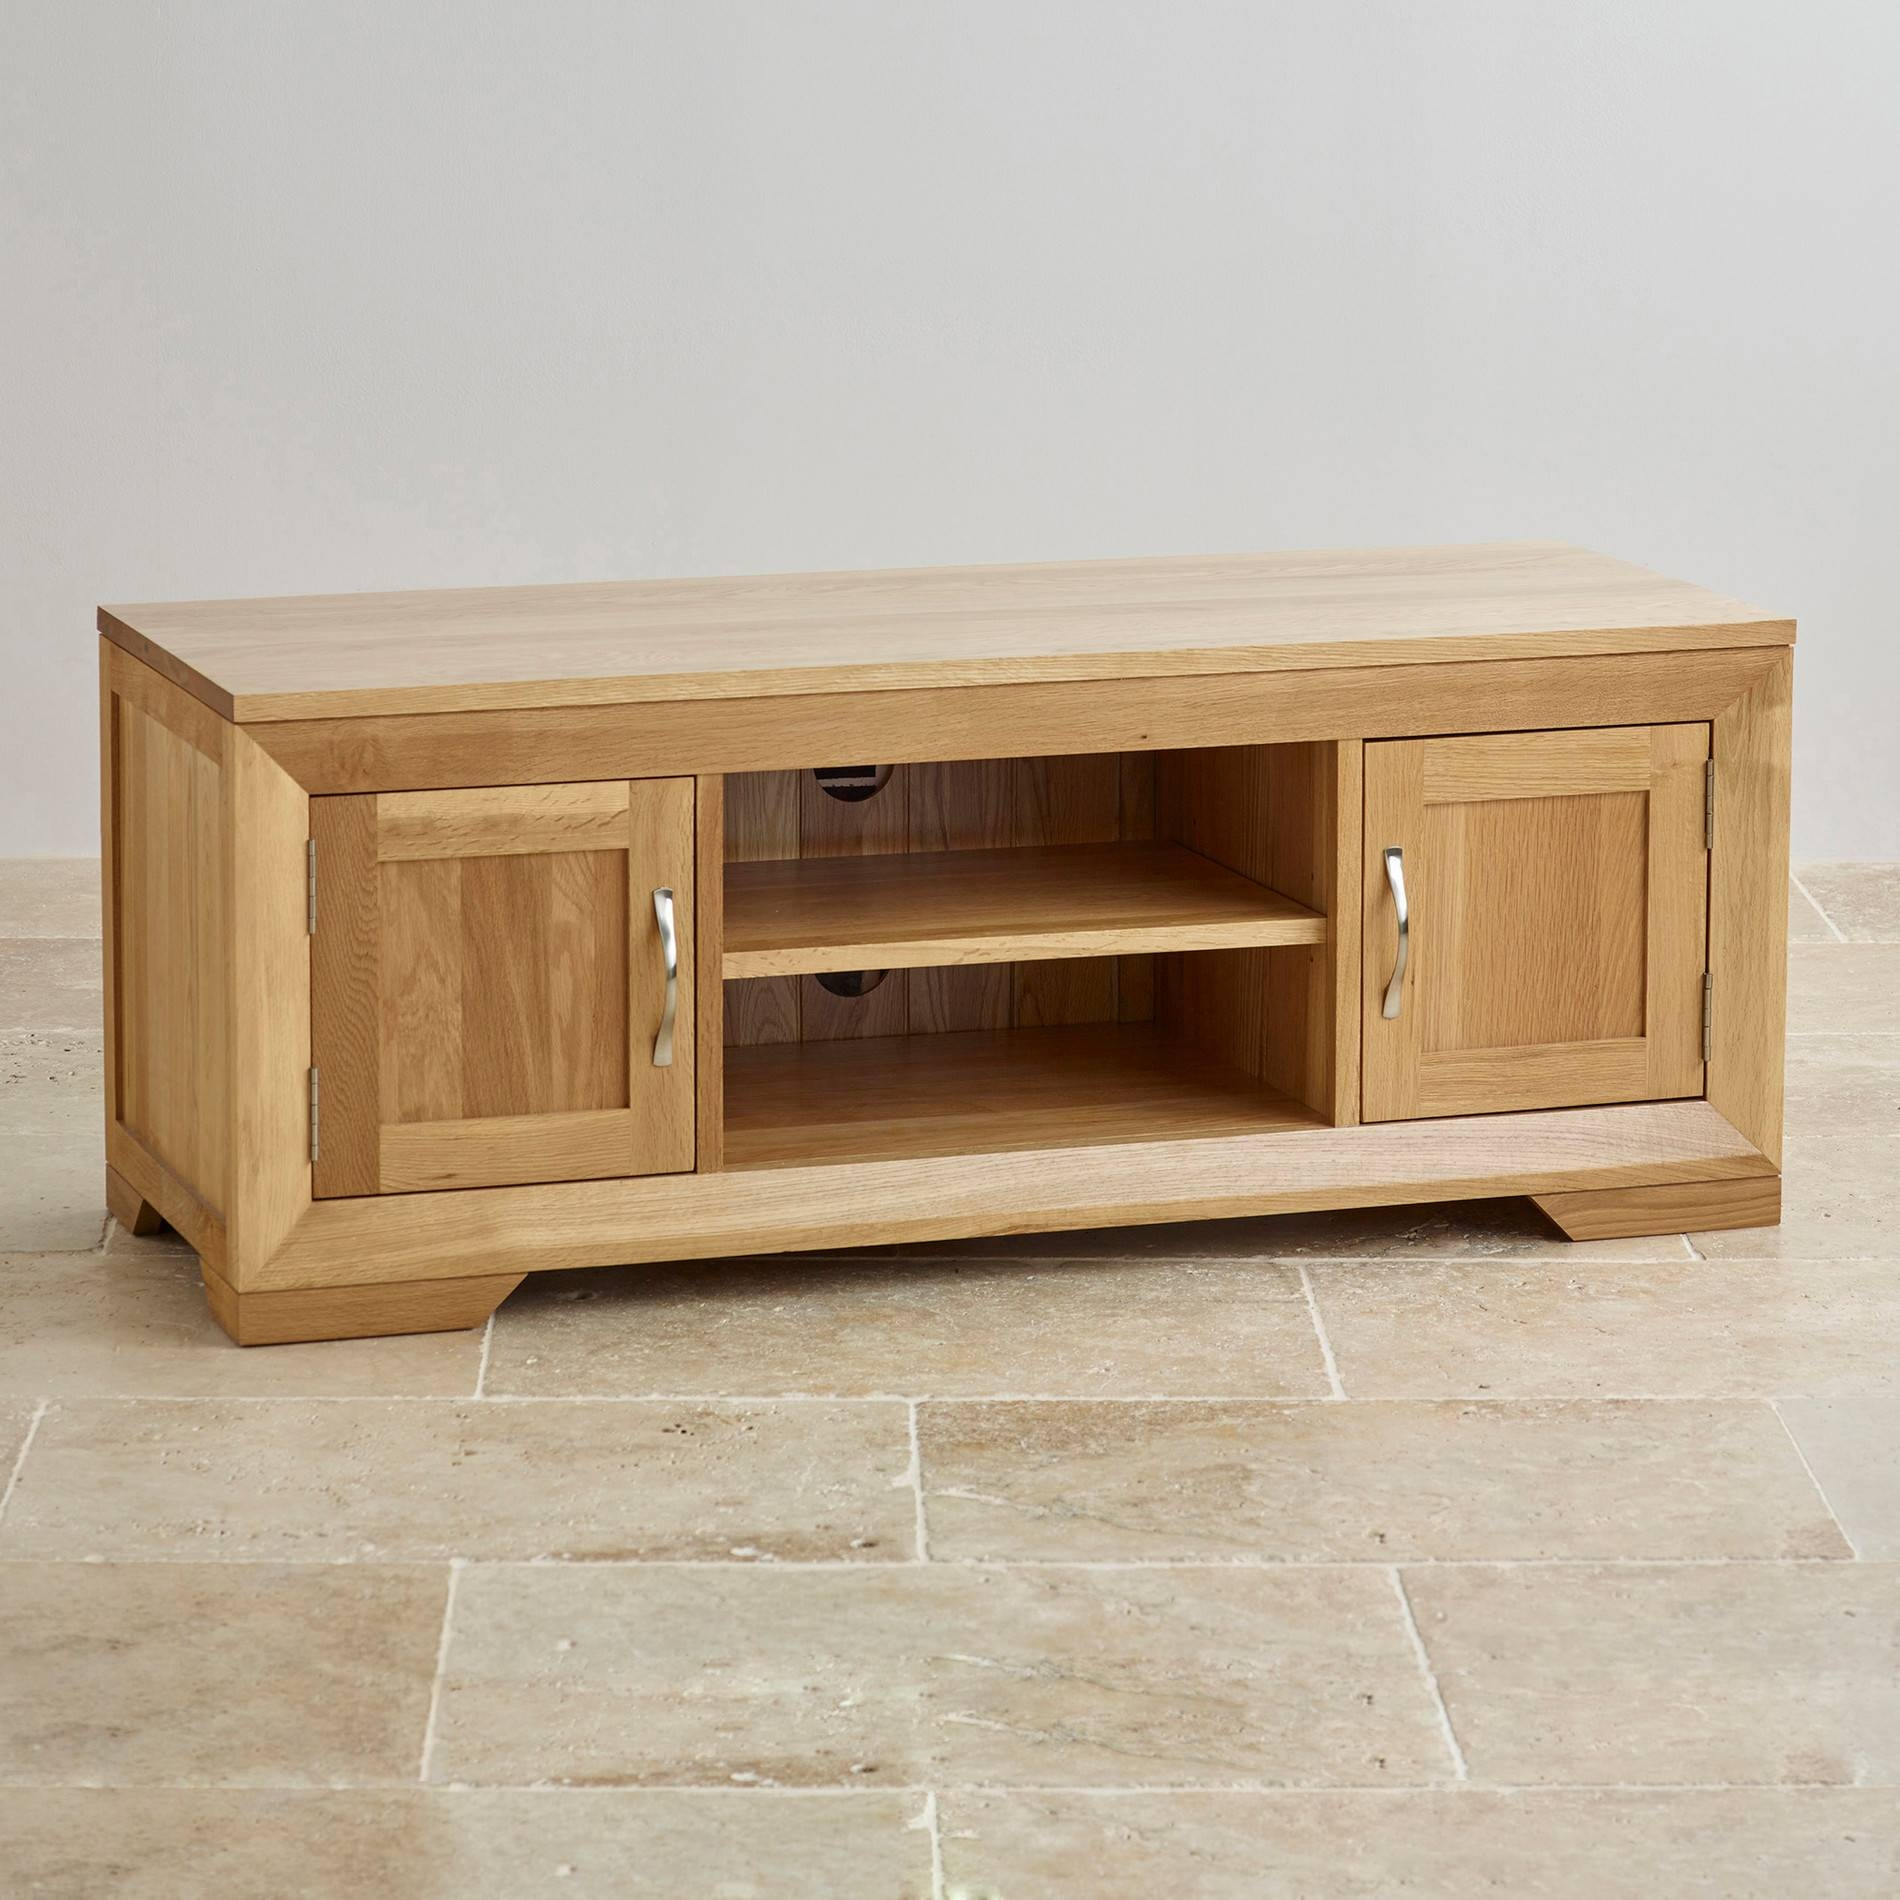 Bevel Natural Solid Oak Widescreen Tv + Dvd Cabinet intended for Oak Tv Cabinets With Doors (Image 2 of 15)